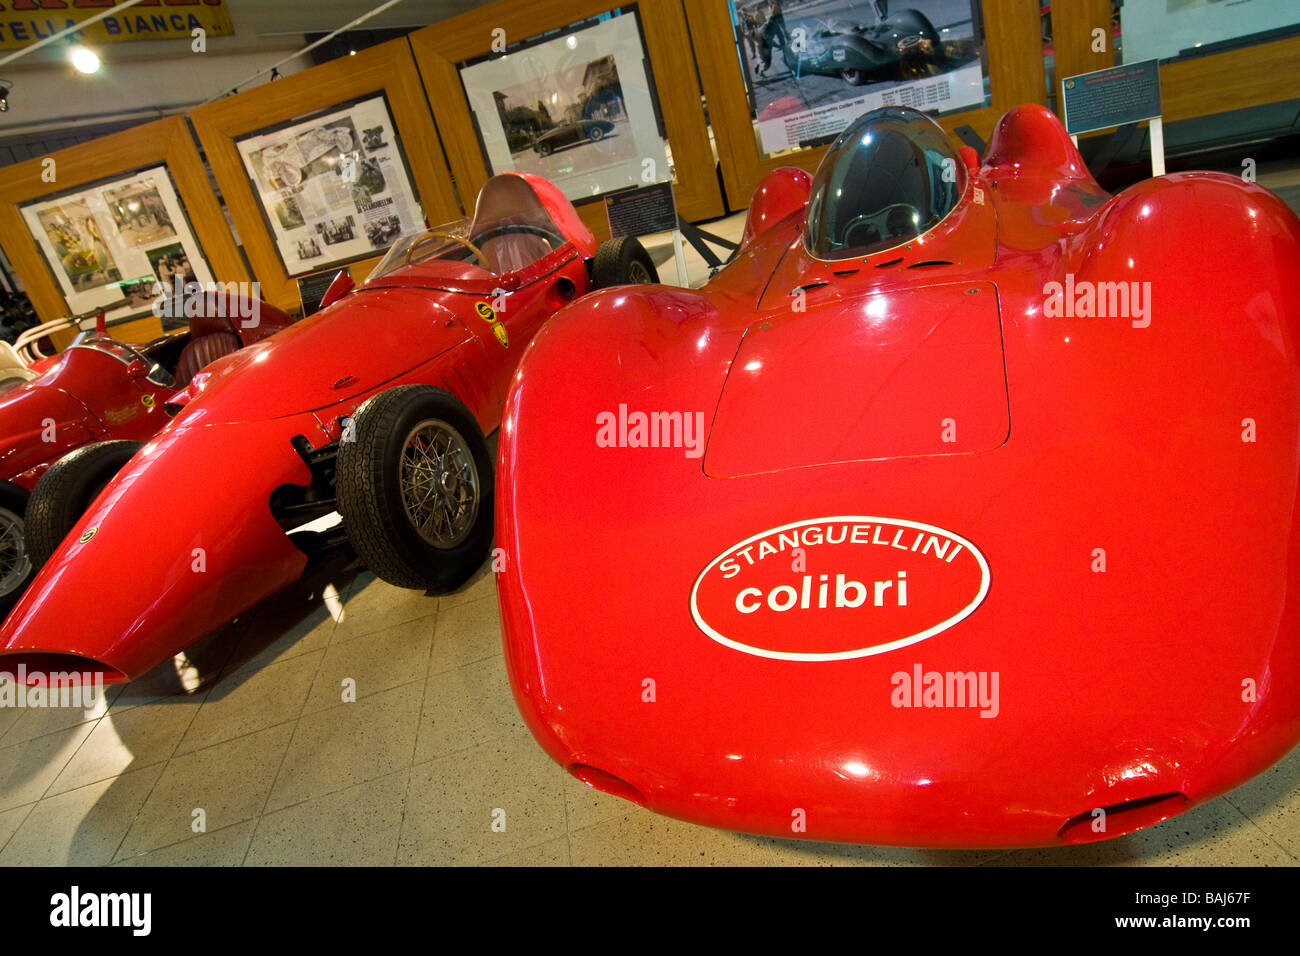 Stanguellini Museum Of Historic Cars Modena Italy   Stock Image